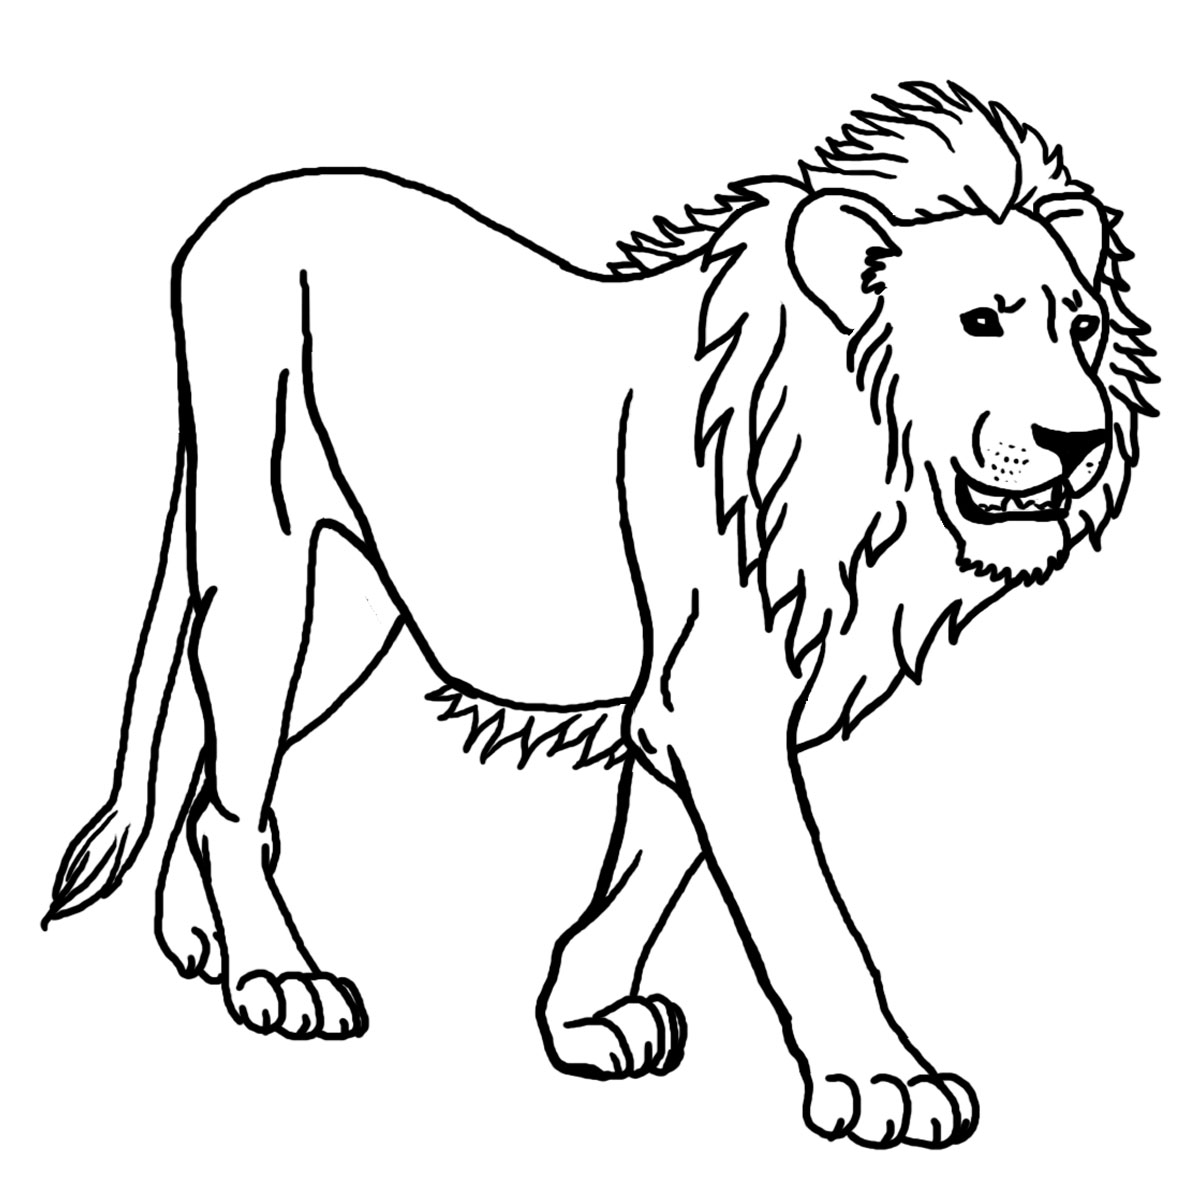 Coloring pages lion - Lion Coloring Pages To Print